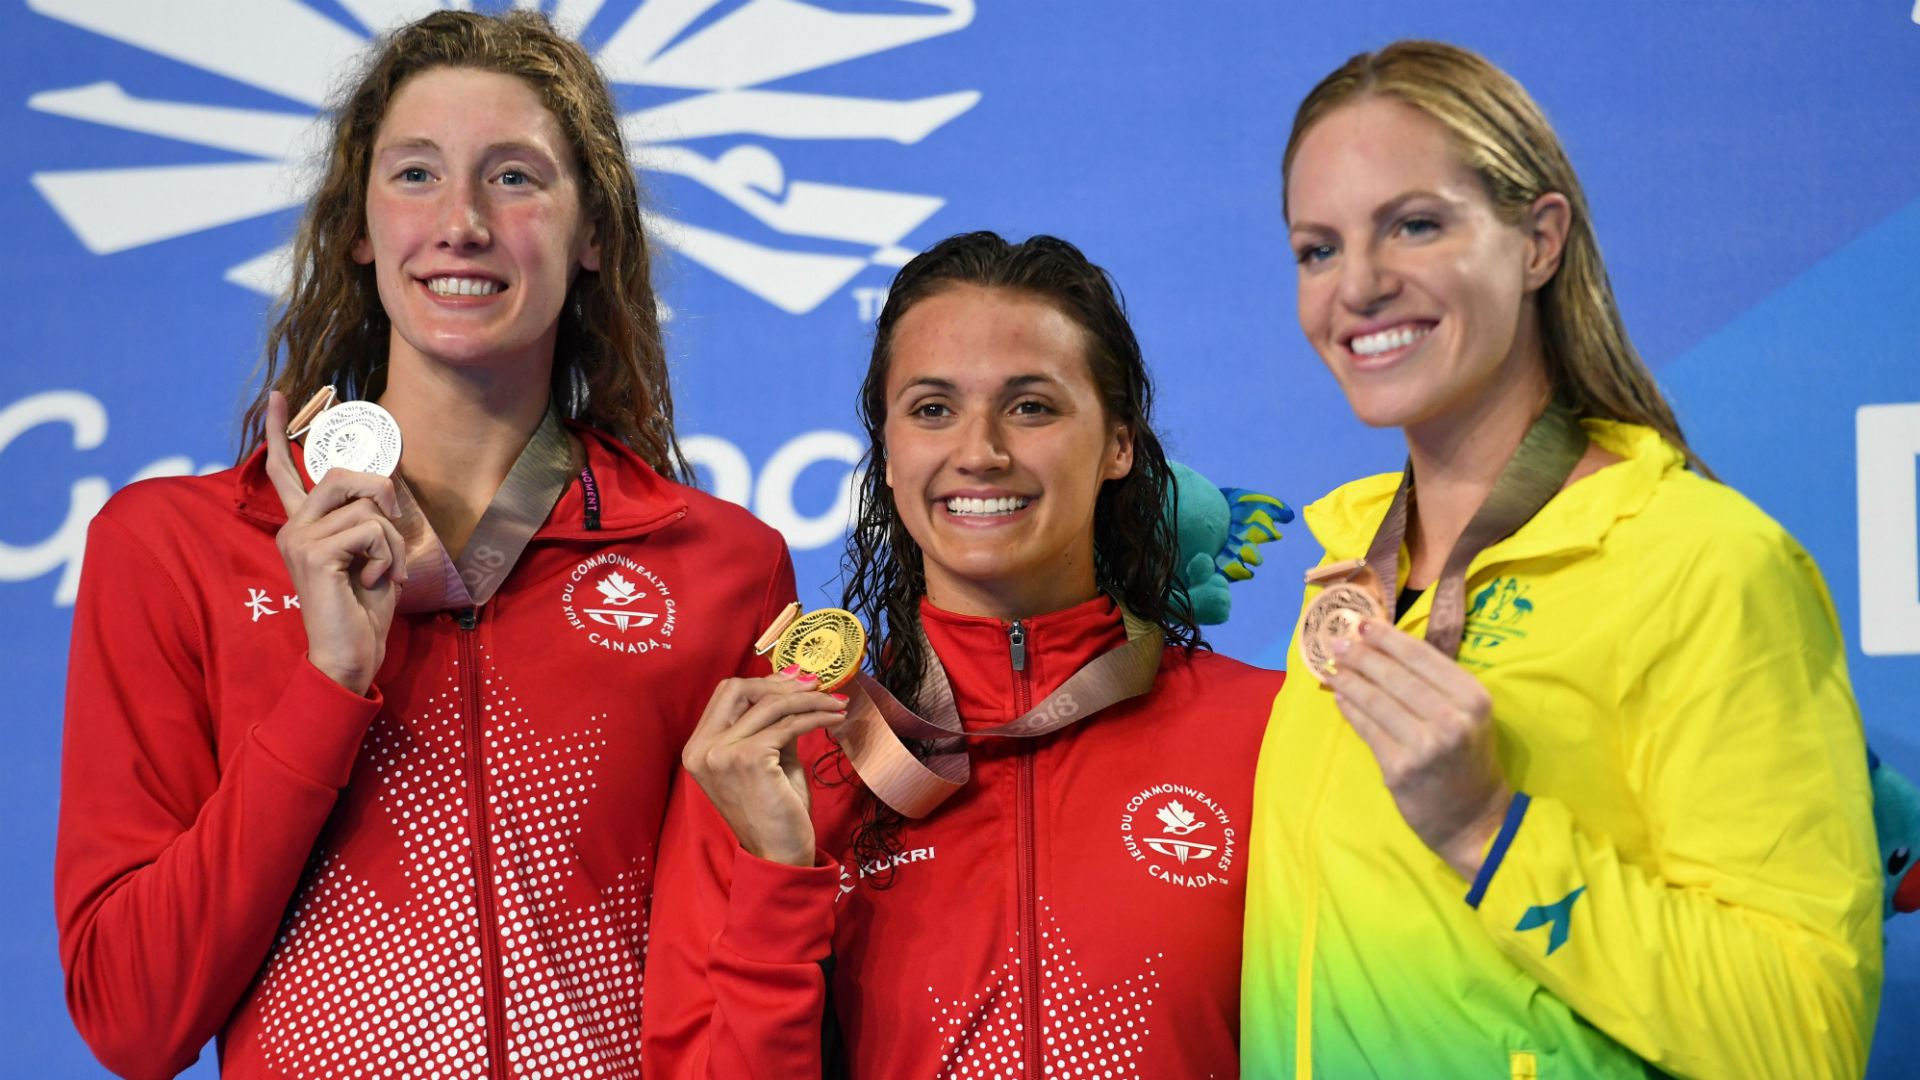 Taylor Ruck ties Canada record with 7th Commonwealth Games medal